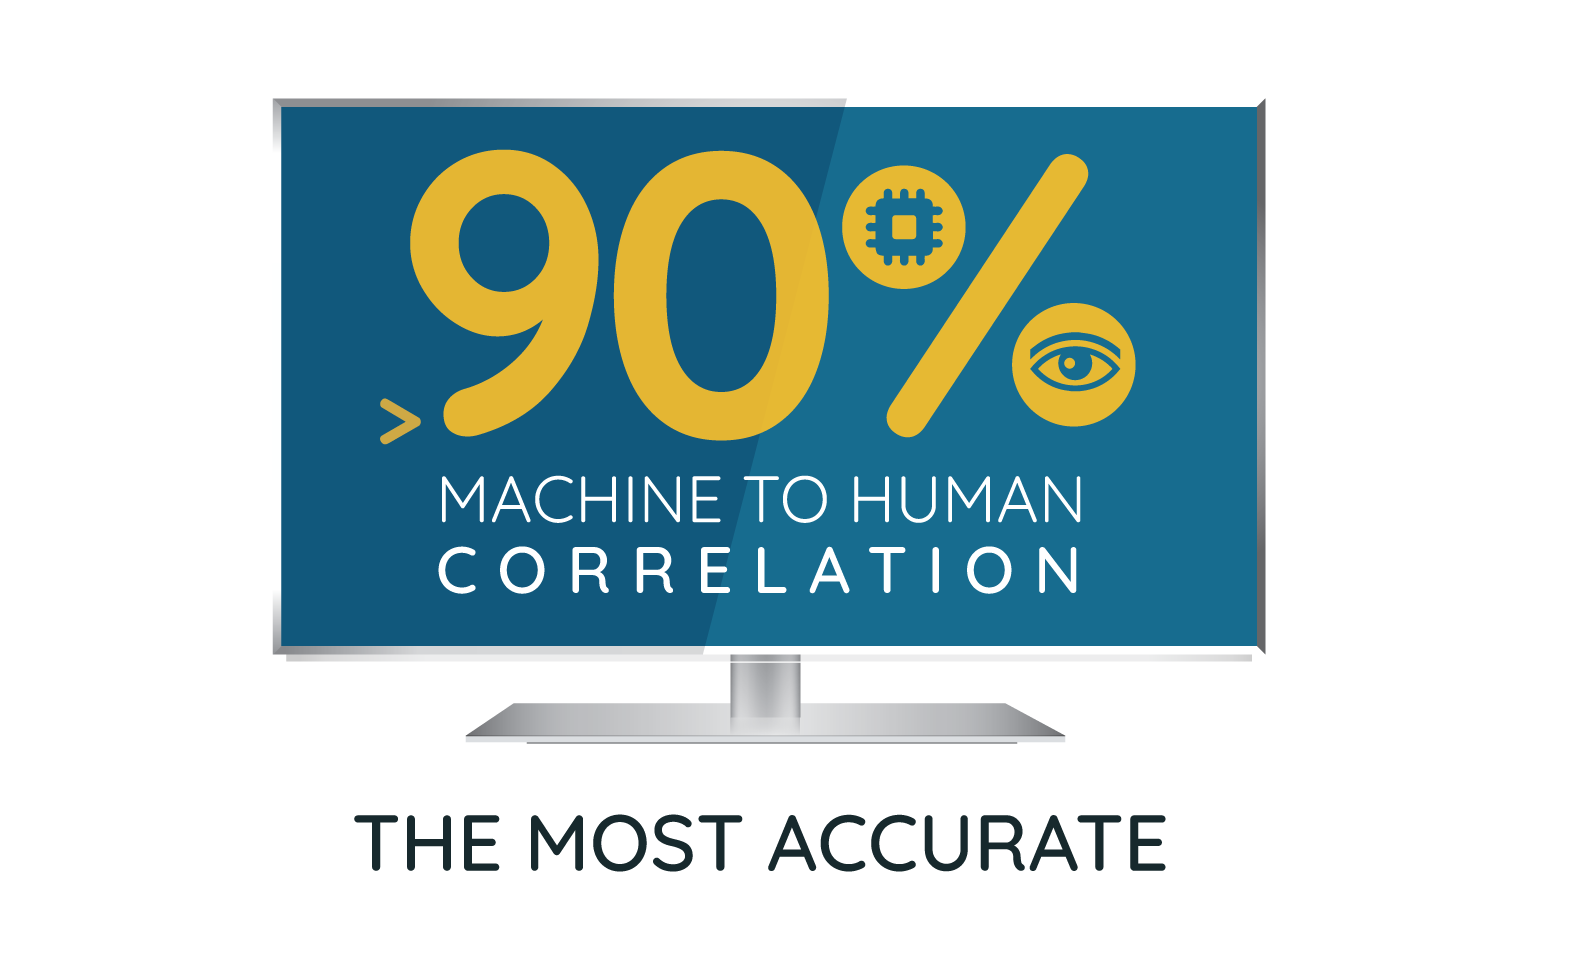 The most accurate infographic to show SSIMPLUS Algorithms have a greater than 90% machine to human correlation